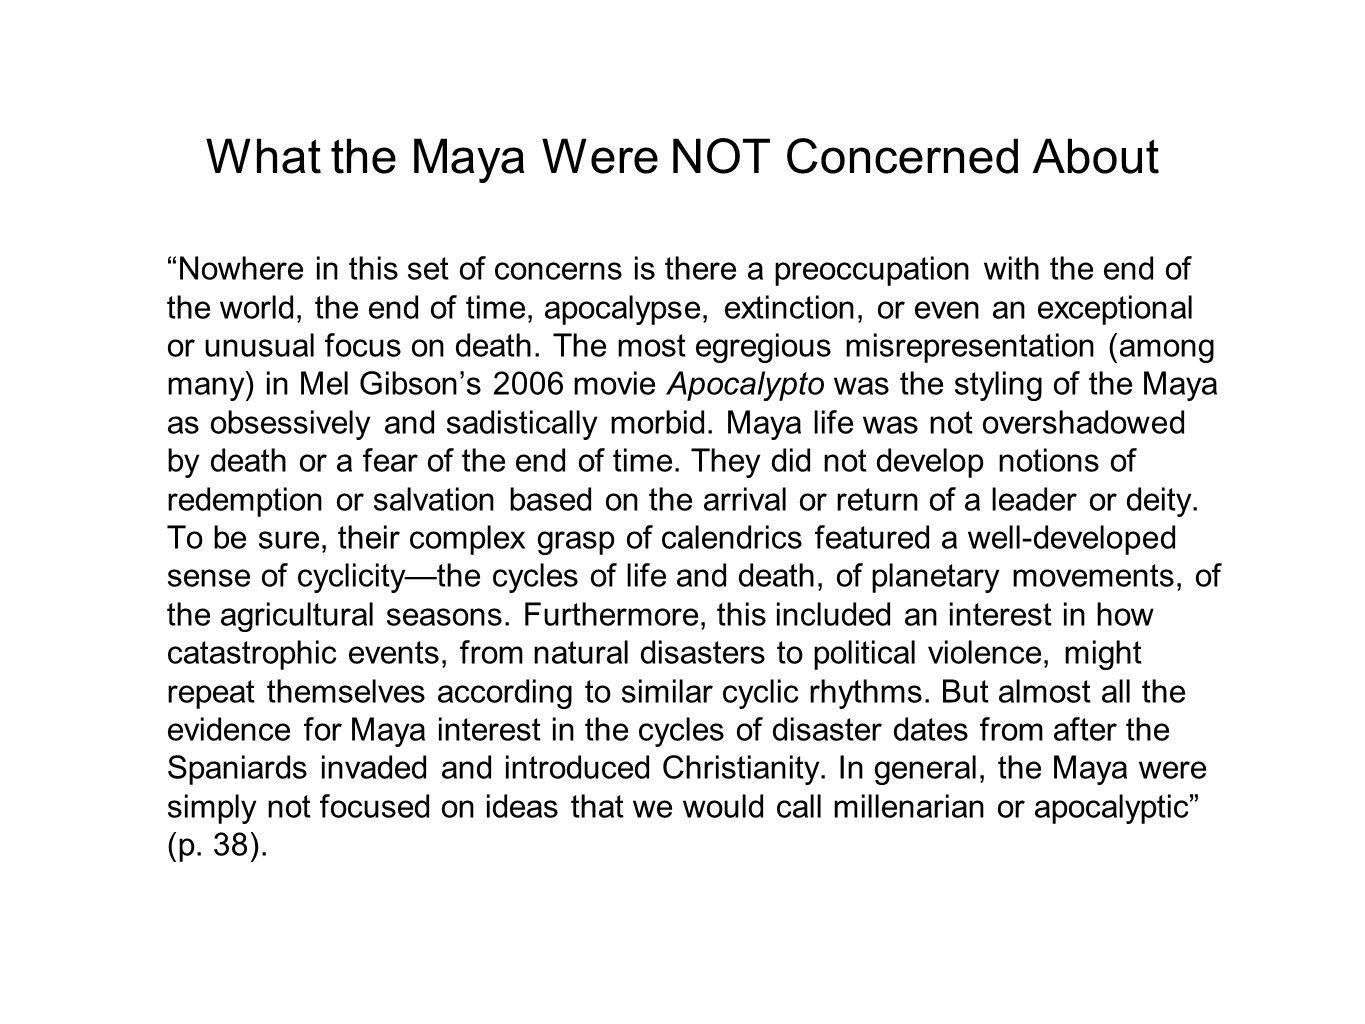 What the Maya Were NOT Concerned About Nowhere in this set of concerns is there a preoccupation with the end of the world, the end of time, apocalypse, extinction, or even an exceptional or unusual focus on death.